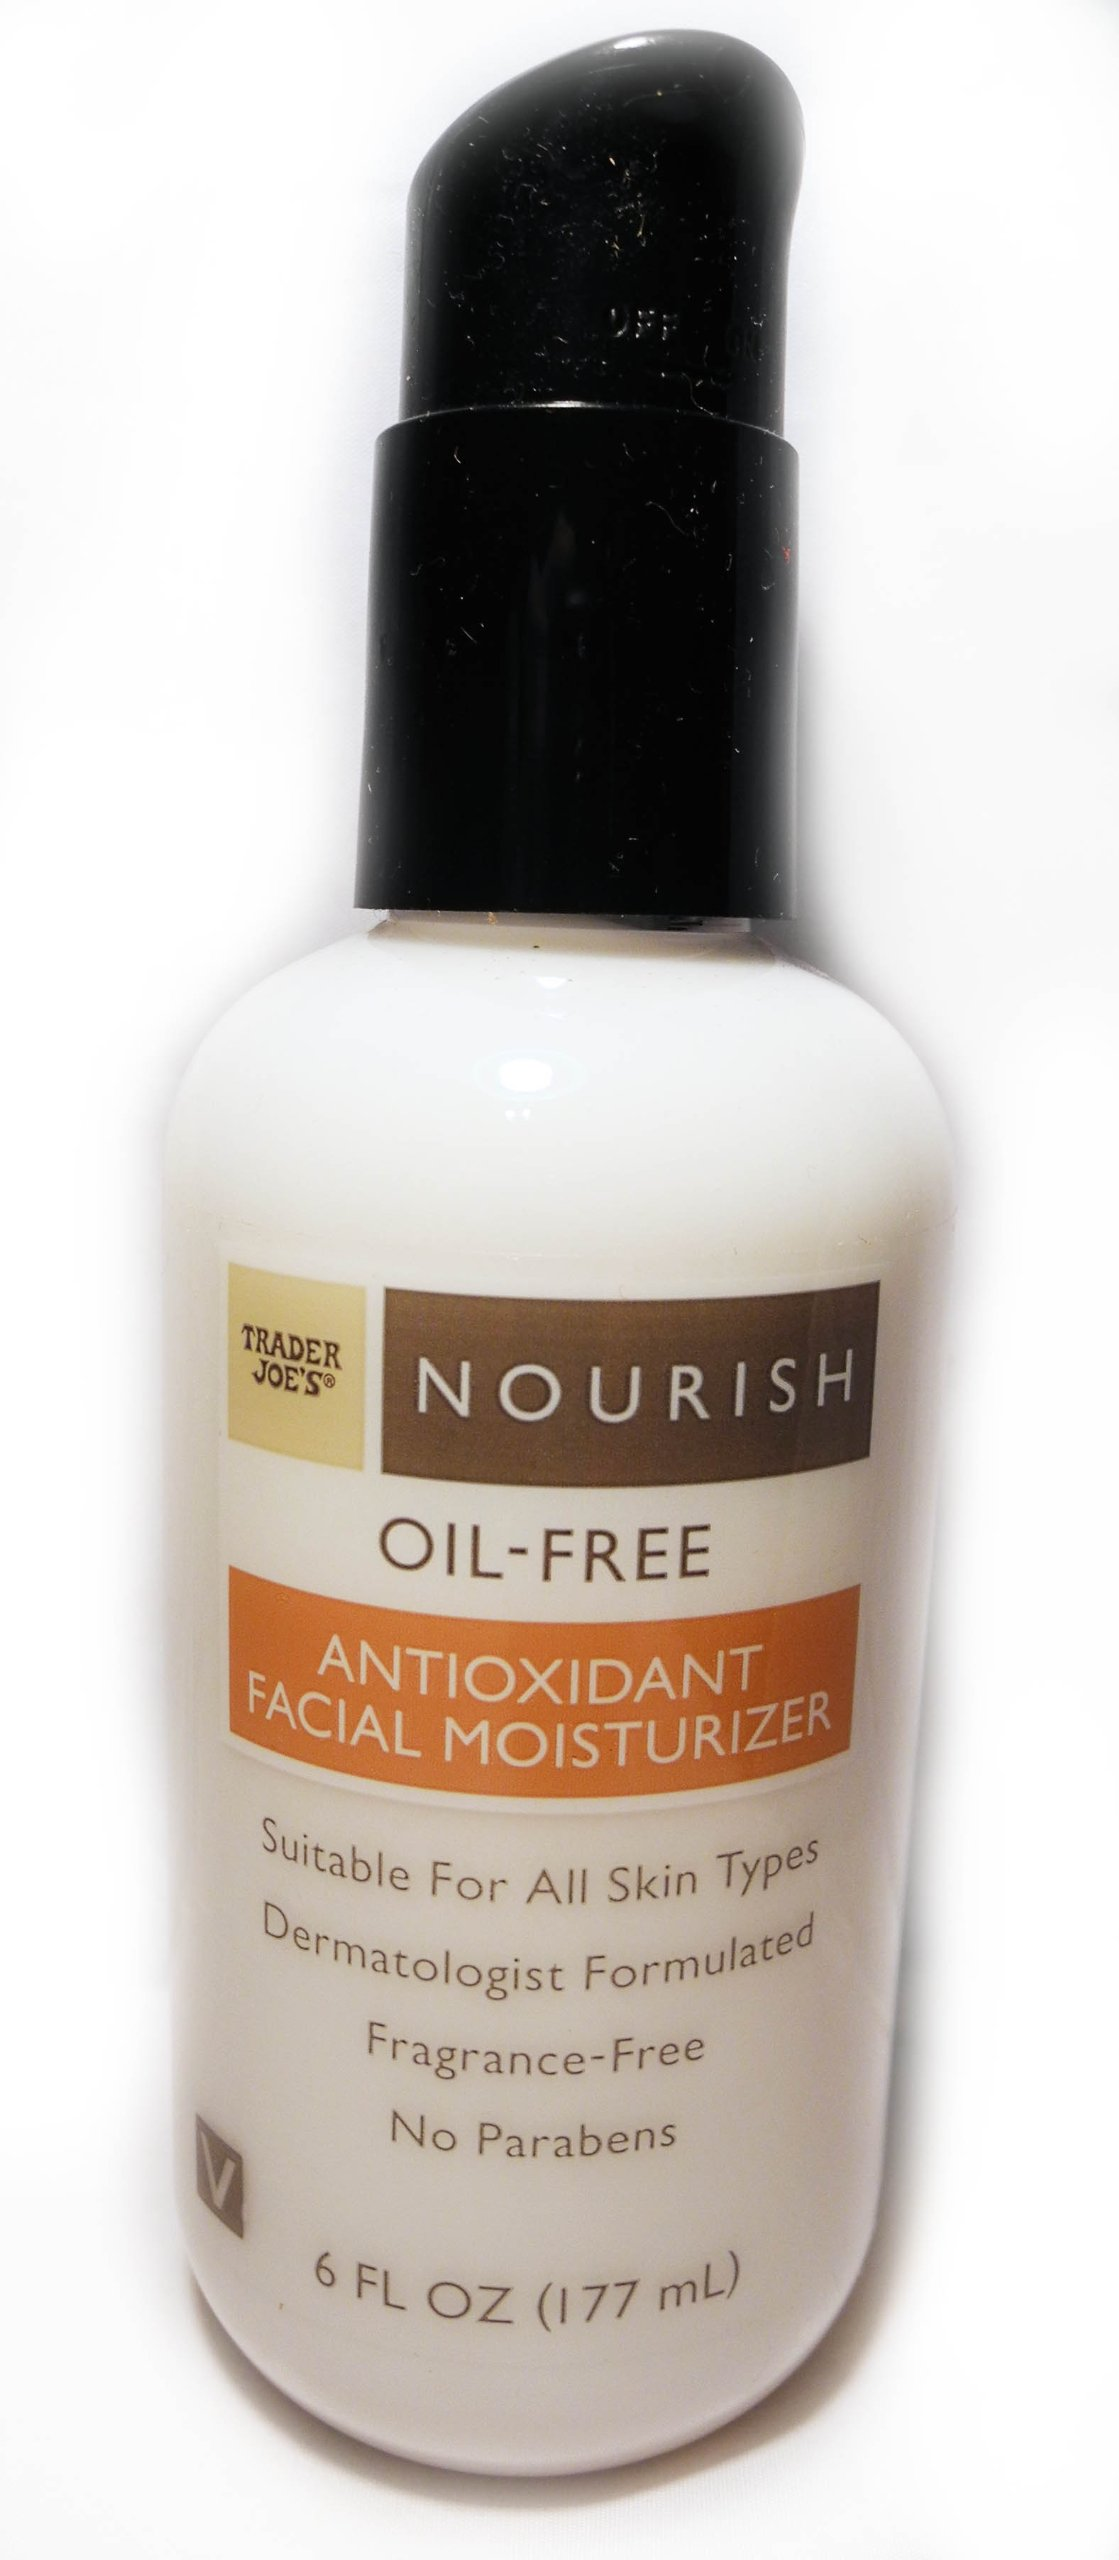 Trader Joe's - Nourish Oil-Free Antioxidant Facial Moisturizer